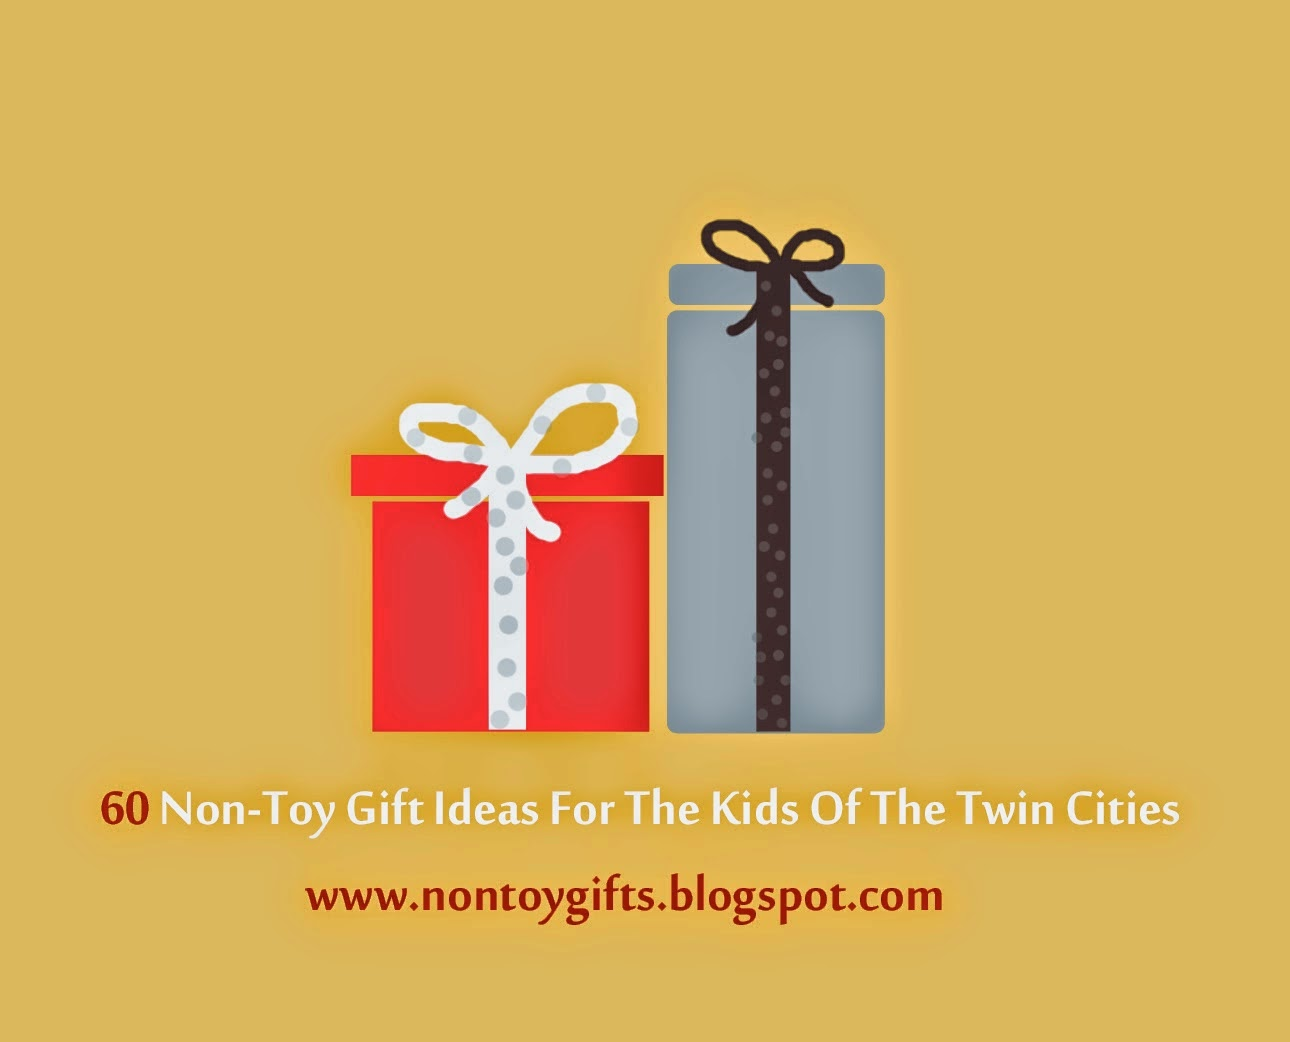 60 Non-Toy Gifts for Kids